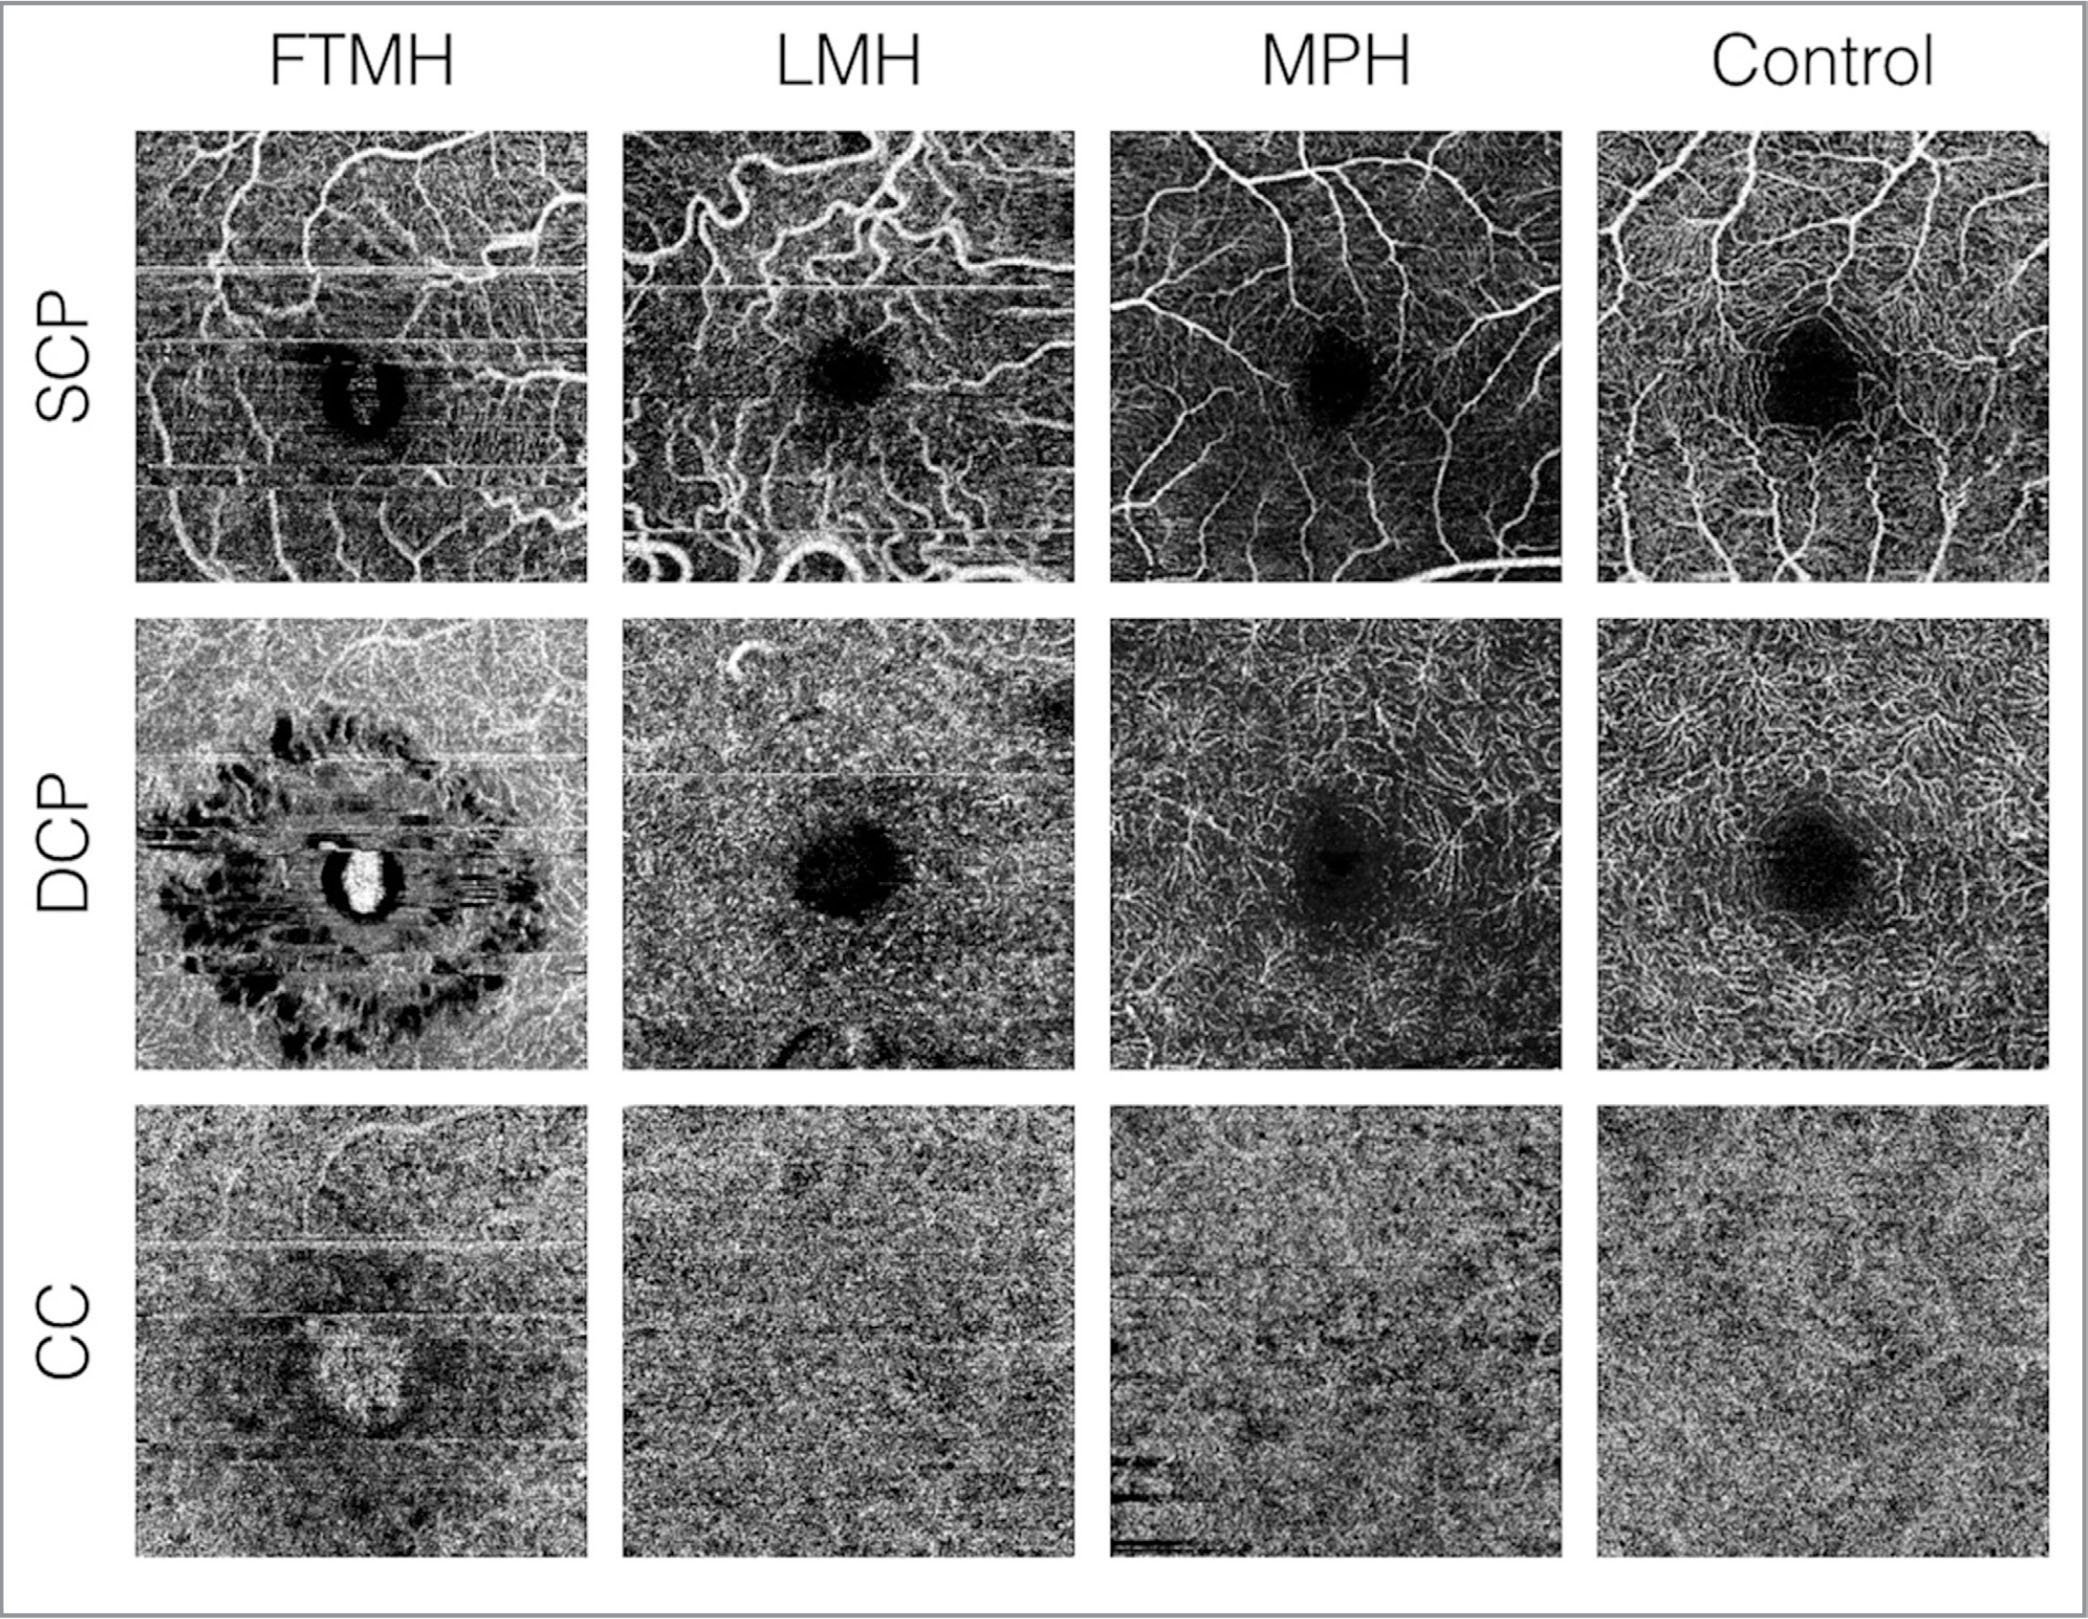 3 Mm X Optical Coherence Tomography Angiography Scans Of The Macula Eyes Affected